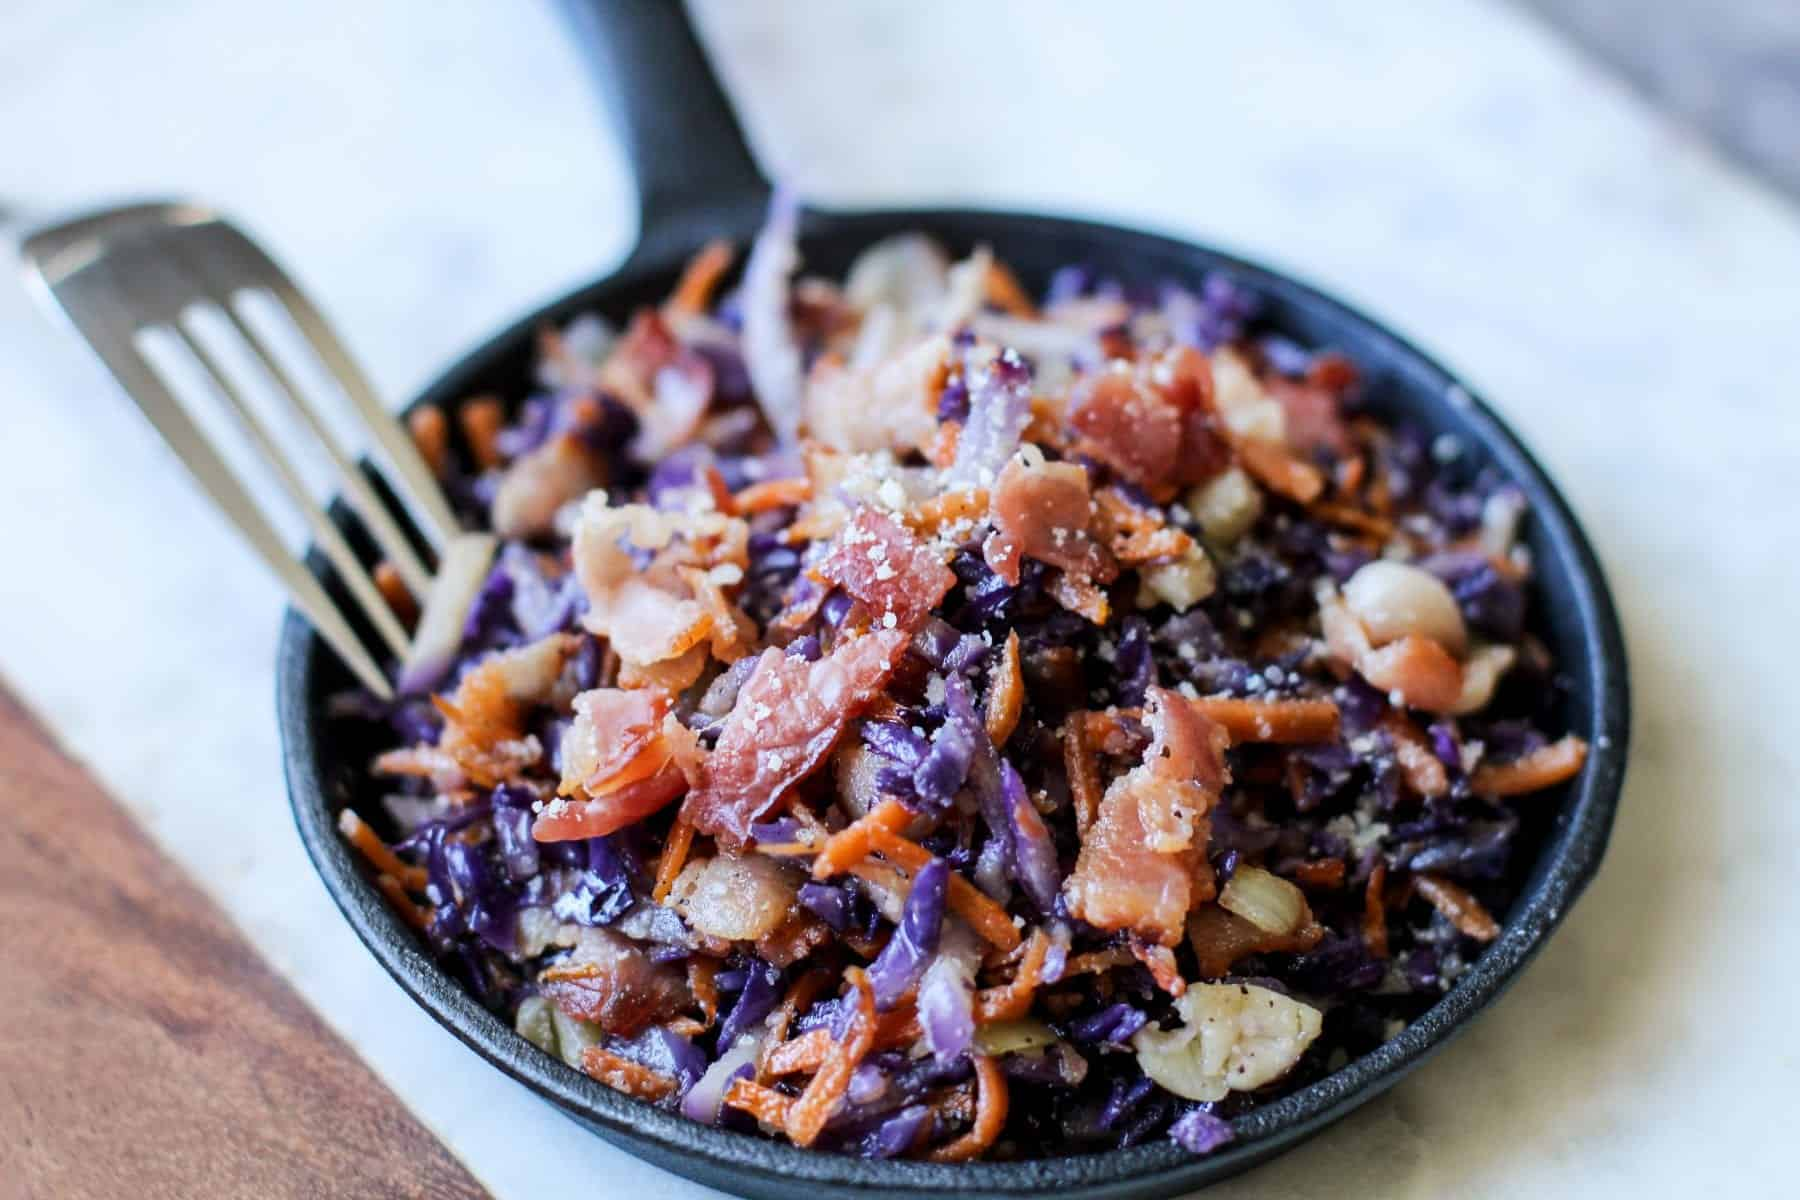 Fried Cabbage With Bacon Keto Low Carb Fried Cabbage Recipe